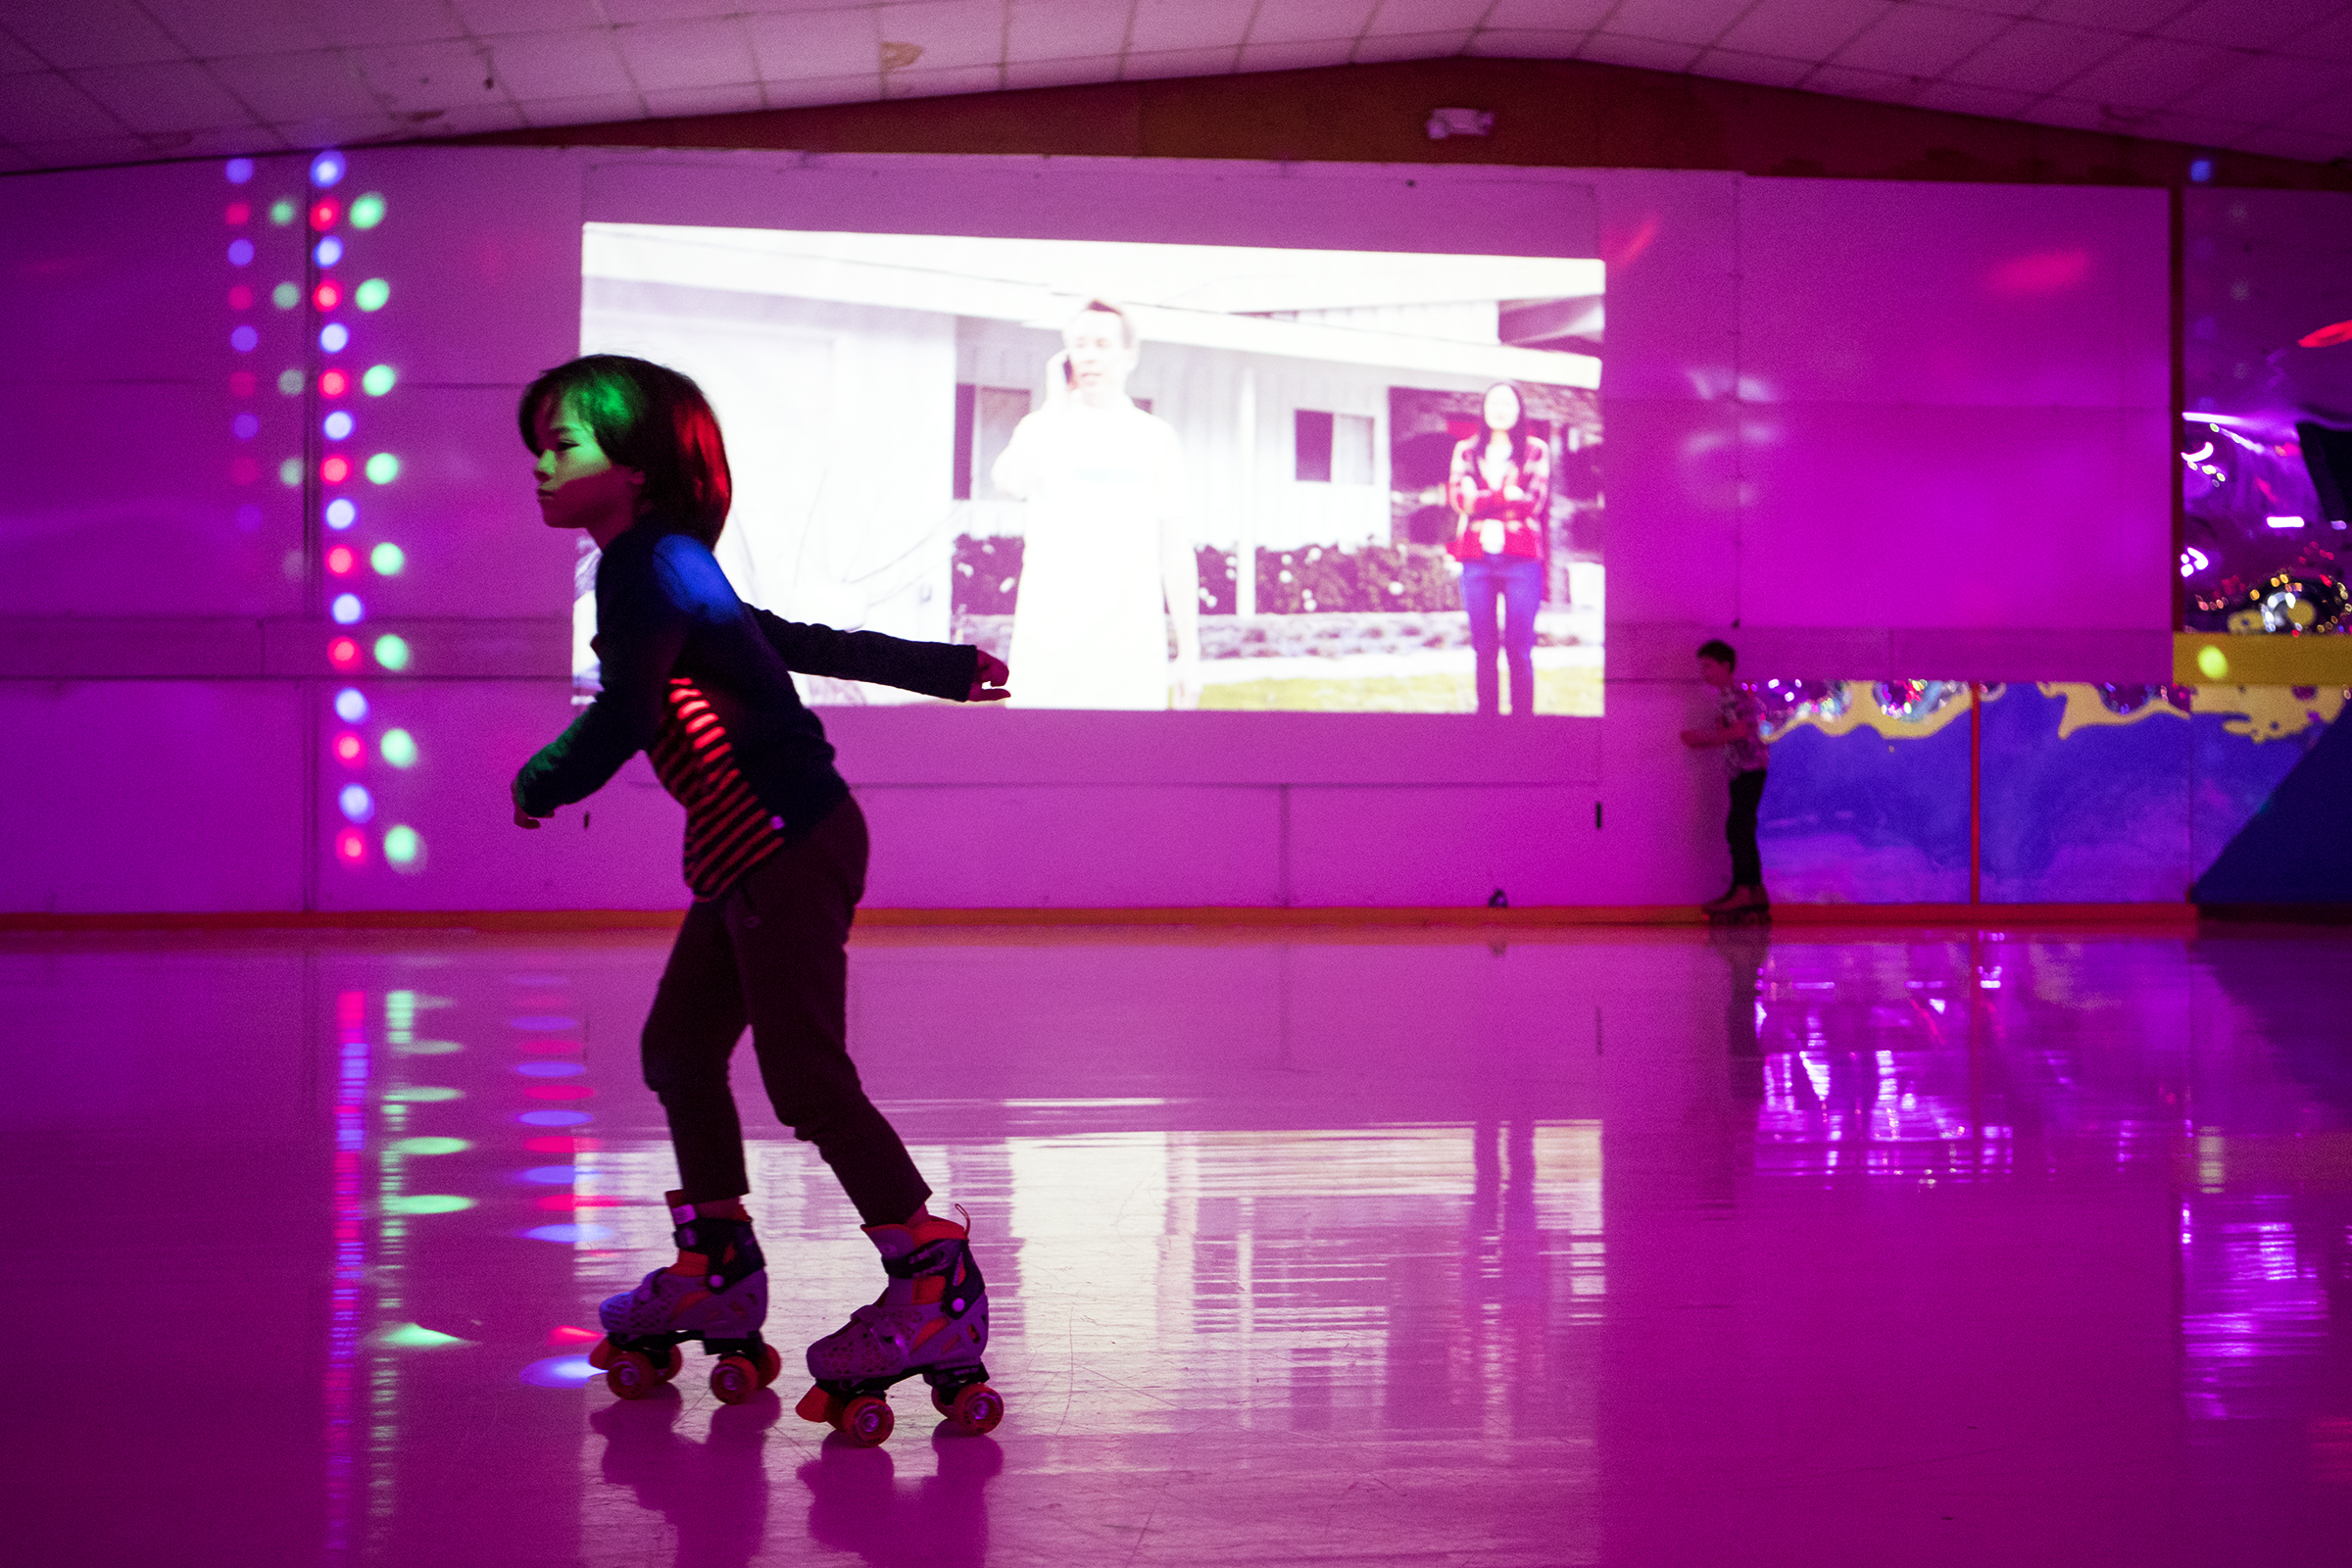 Justen Ling, 7, of Natick, roller skates on the rink at Roller Kingdom in Hudson on Dec. 15, 2018.